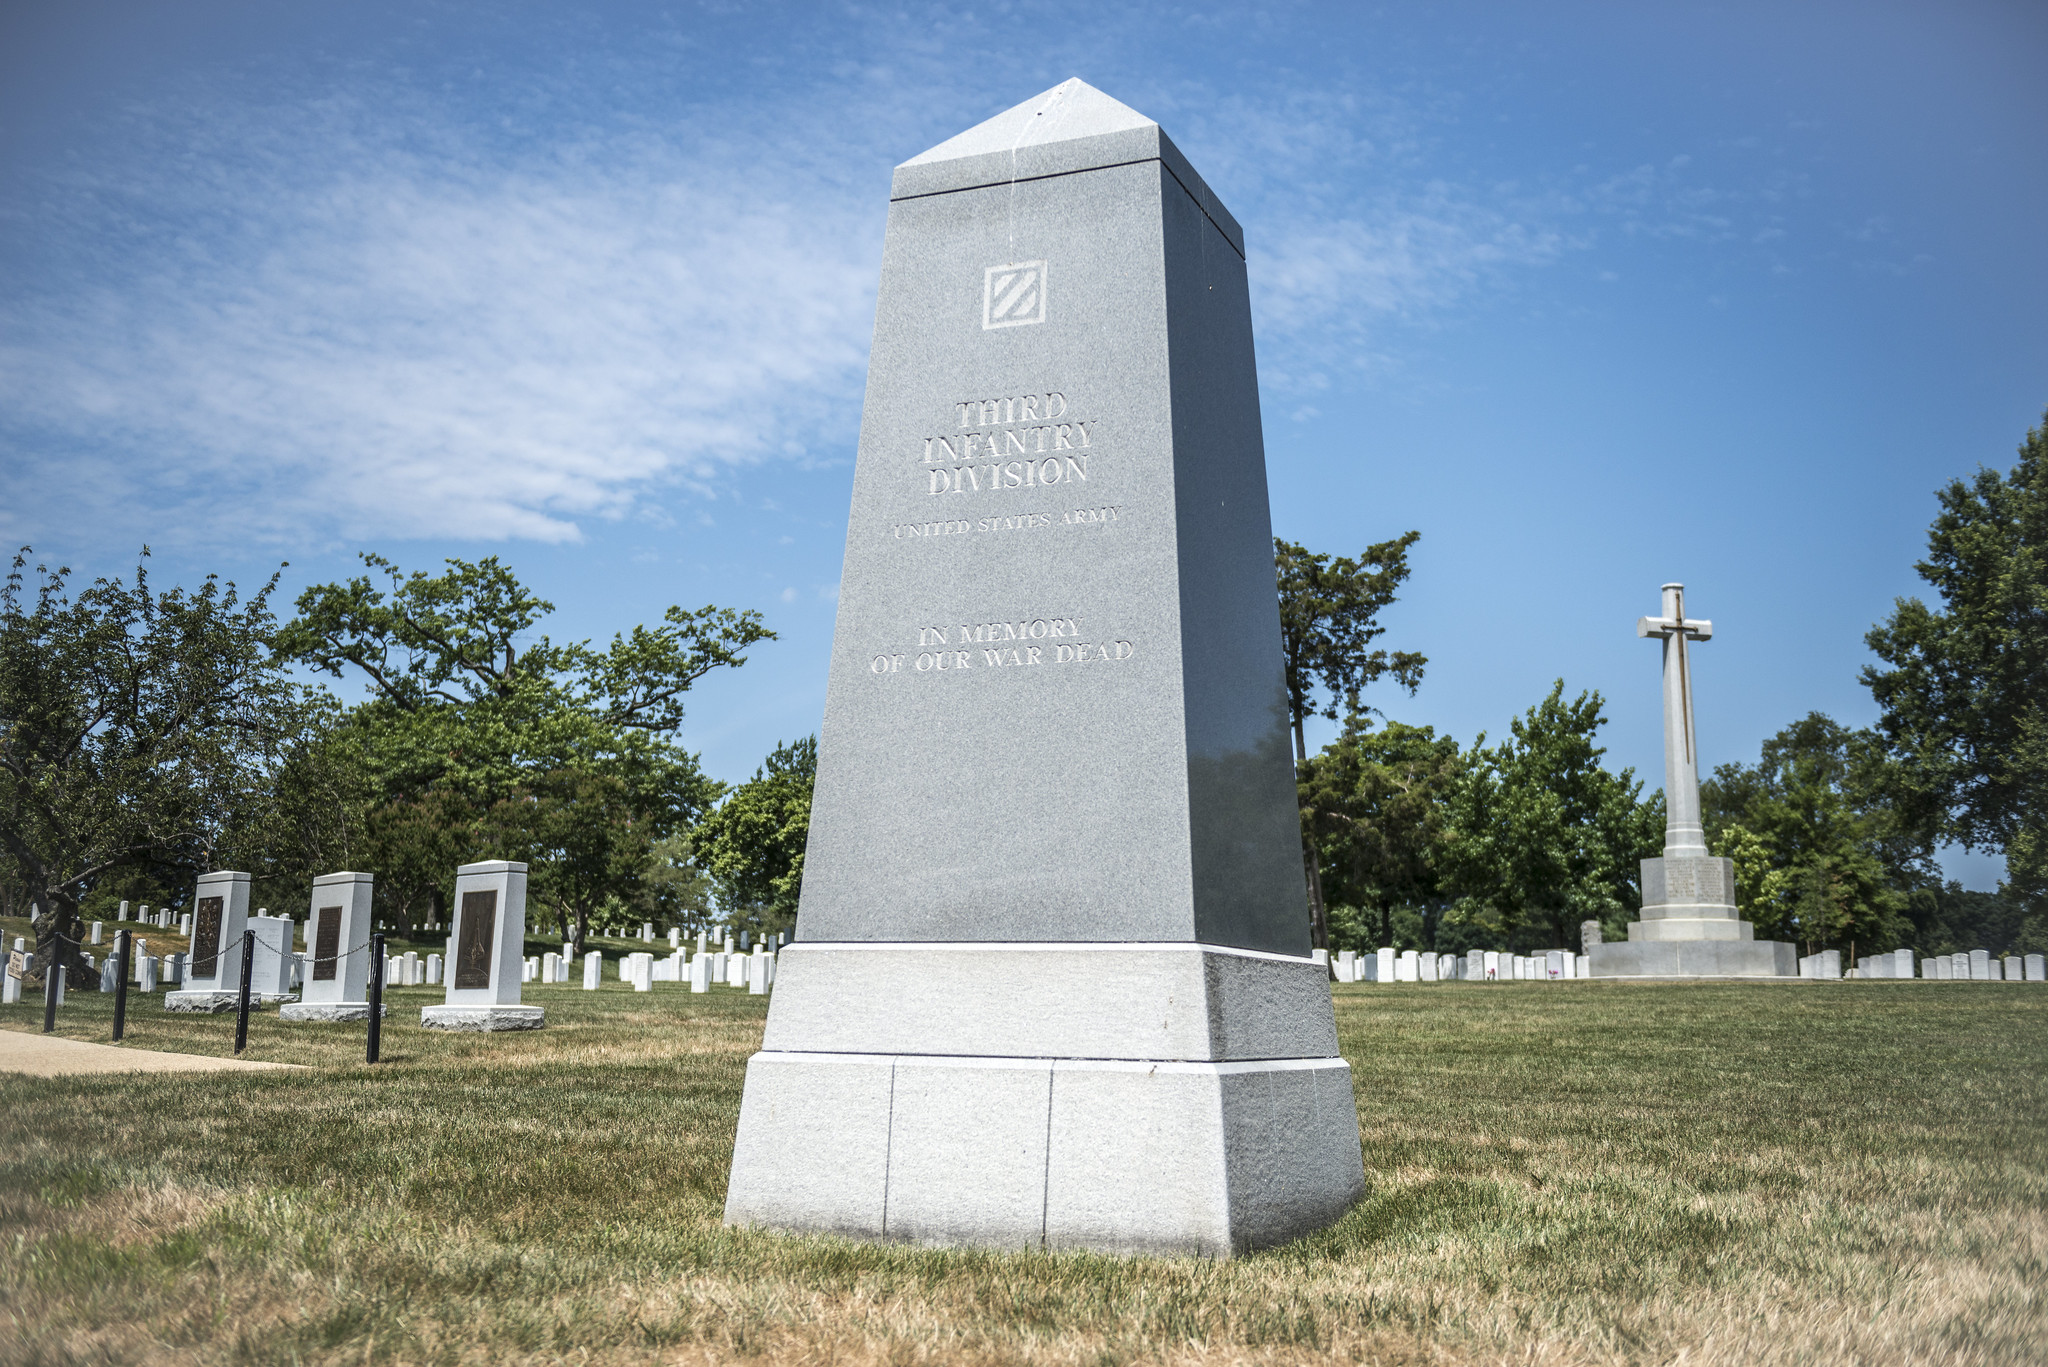 A nine-ton gray obelisk commemorates the service of the Army's 3rd Infantry Division